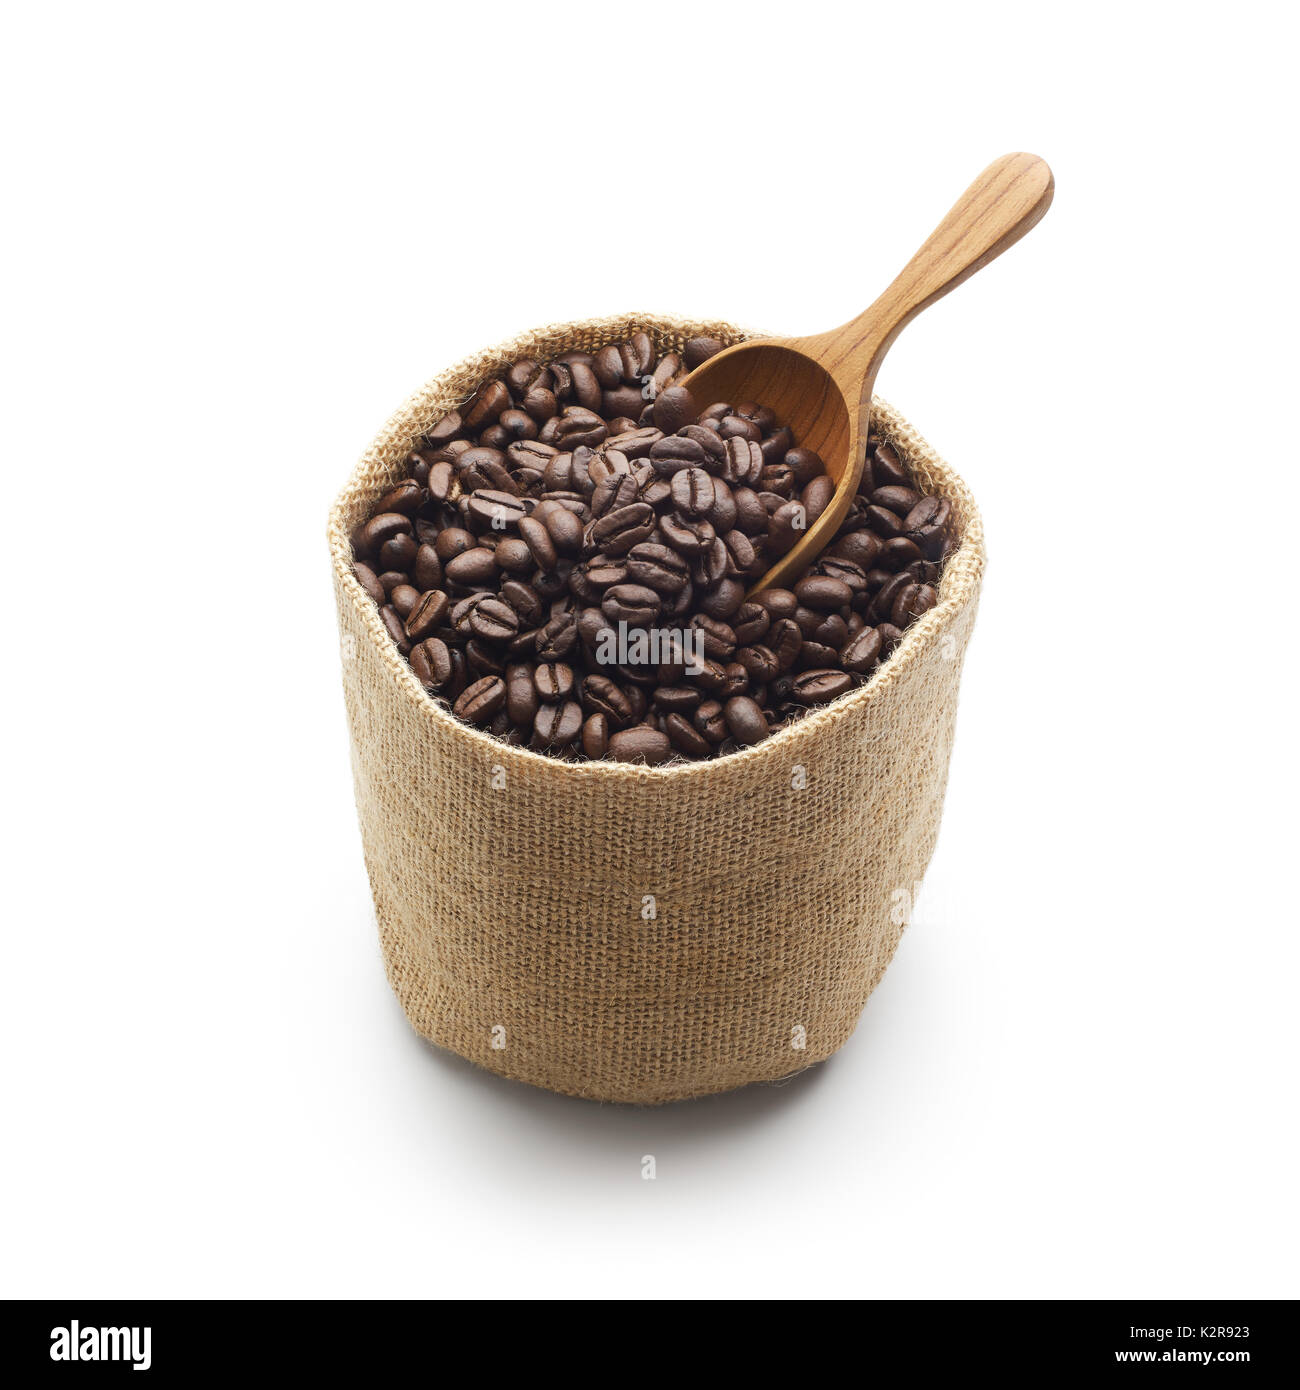 Coffee beans, burlap sack and wooden scoop isolated on white background - Stock Image